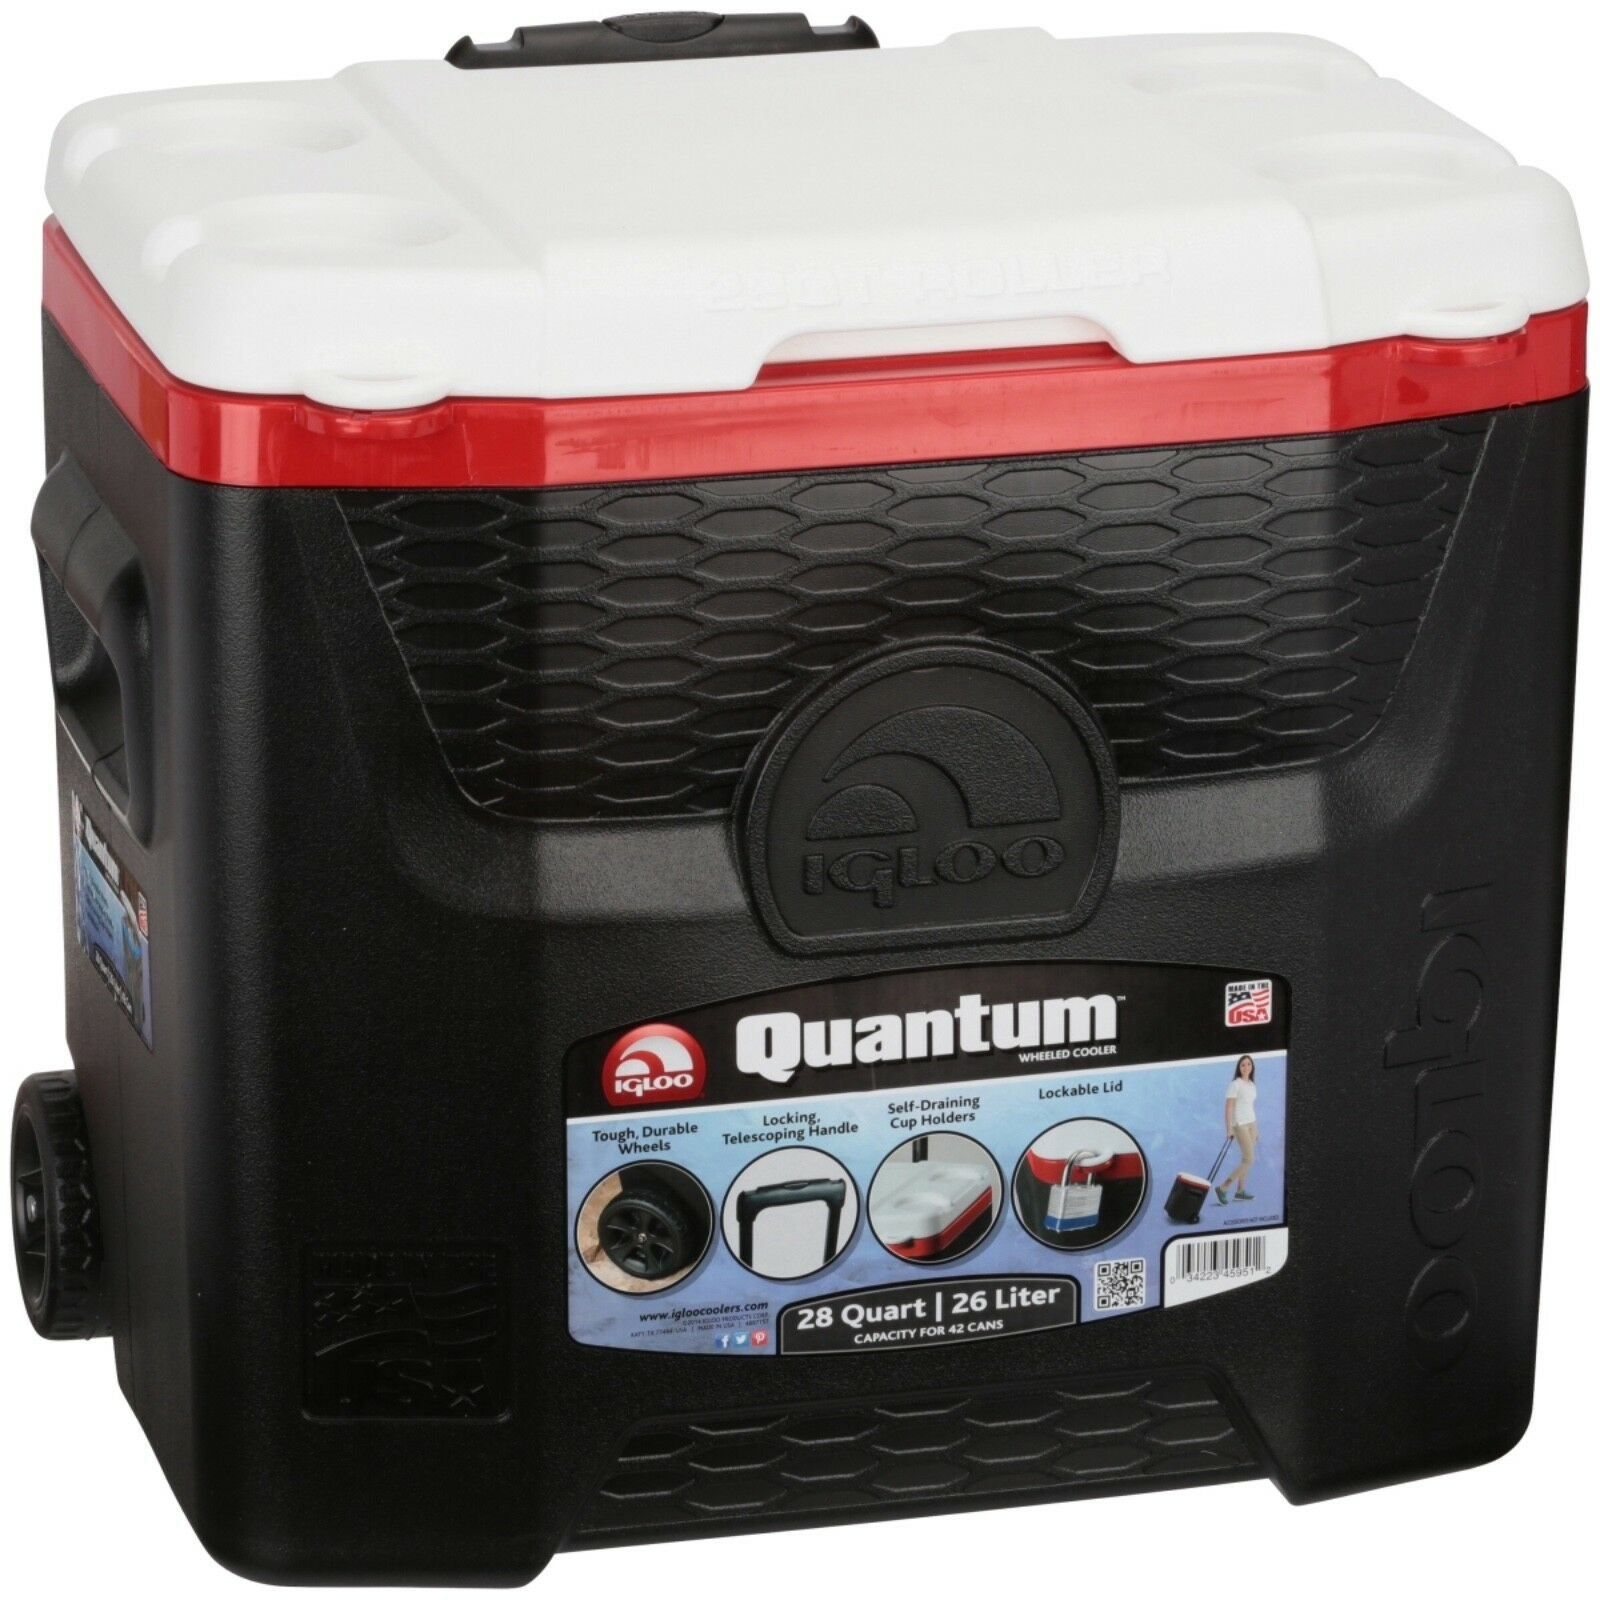 Igloo 28-Quart Quantum Wheeled Cooler in Black/Red Heat, Bra